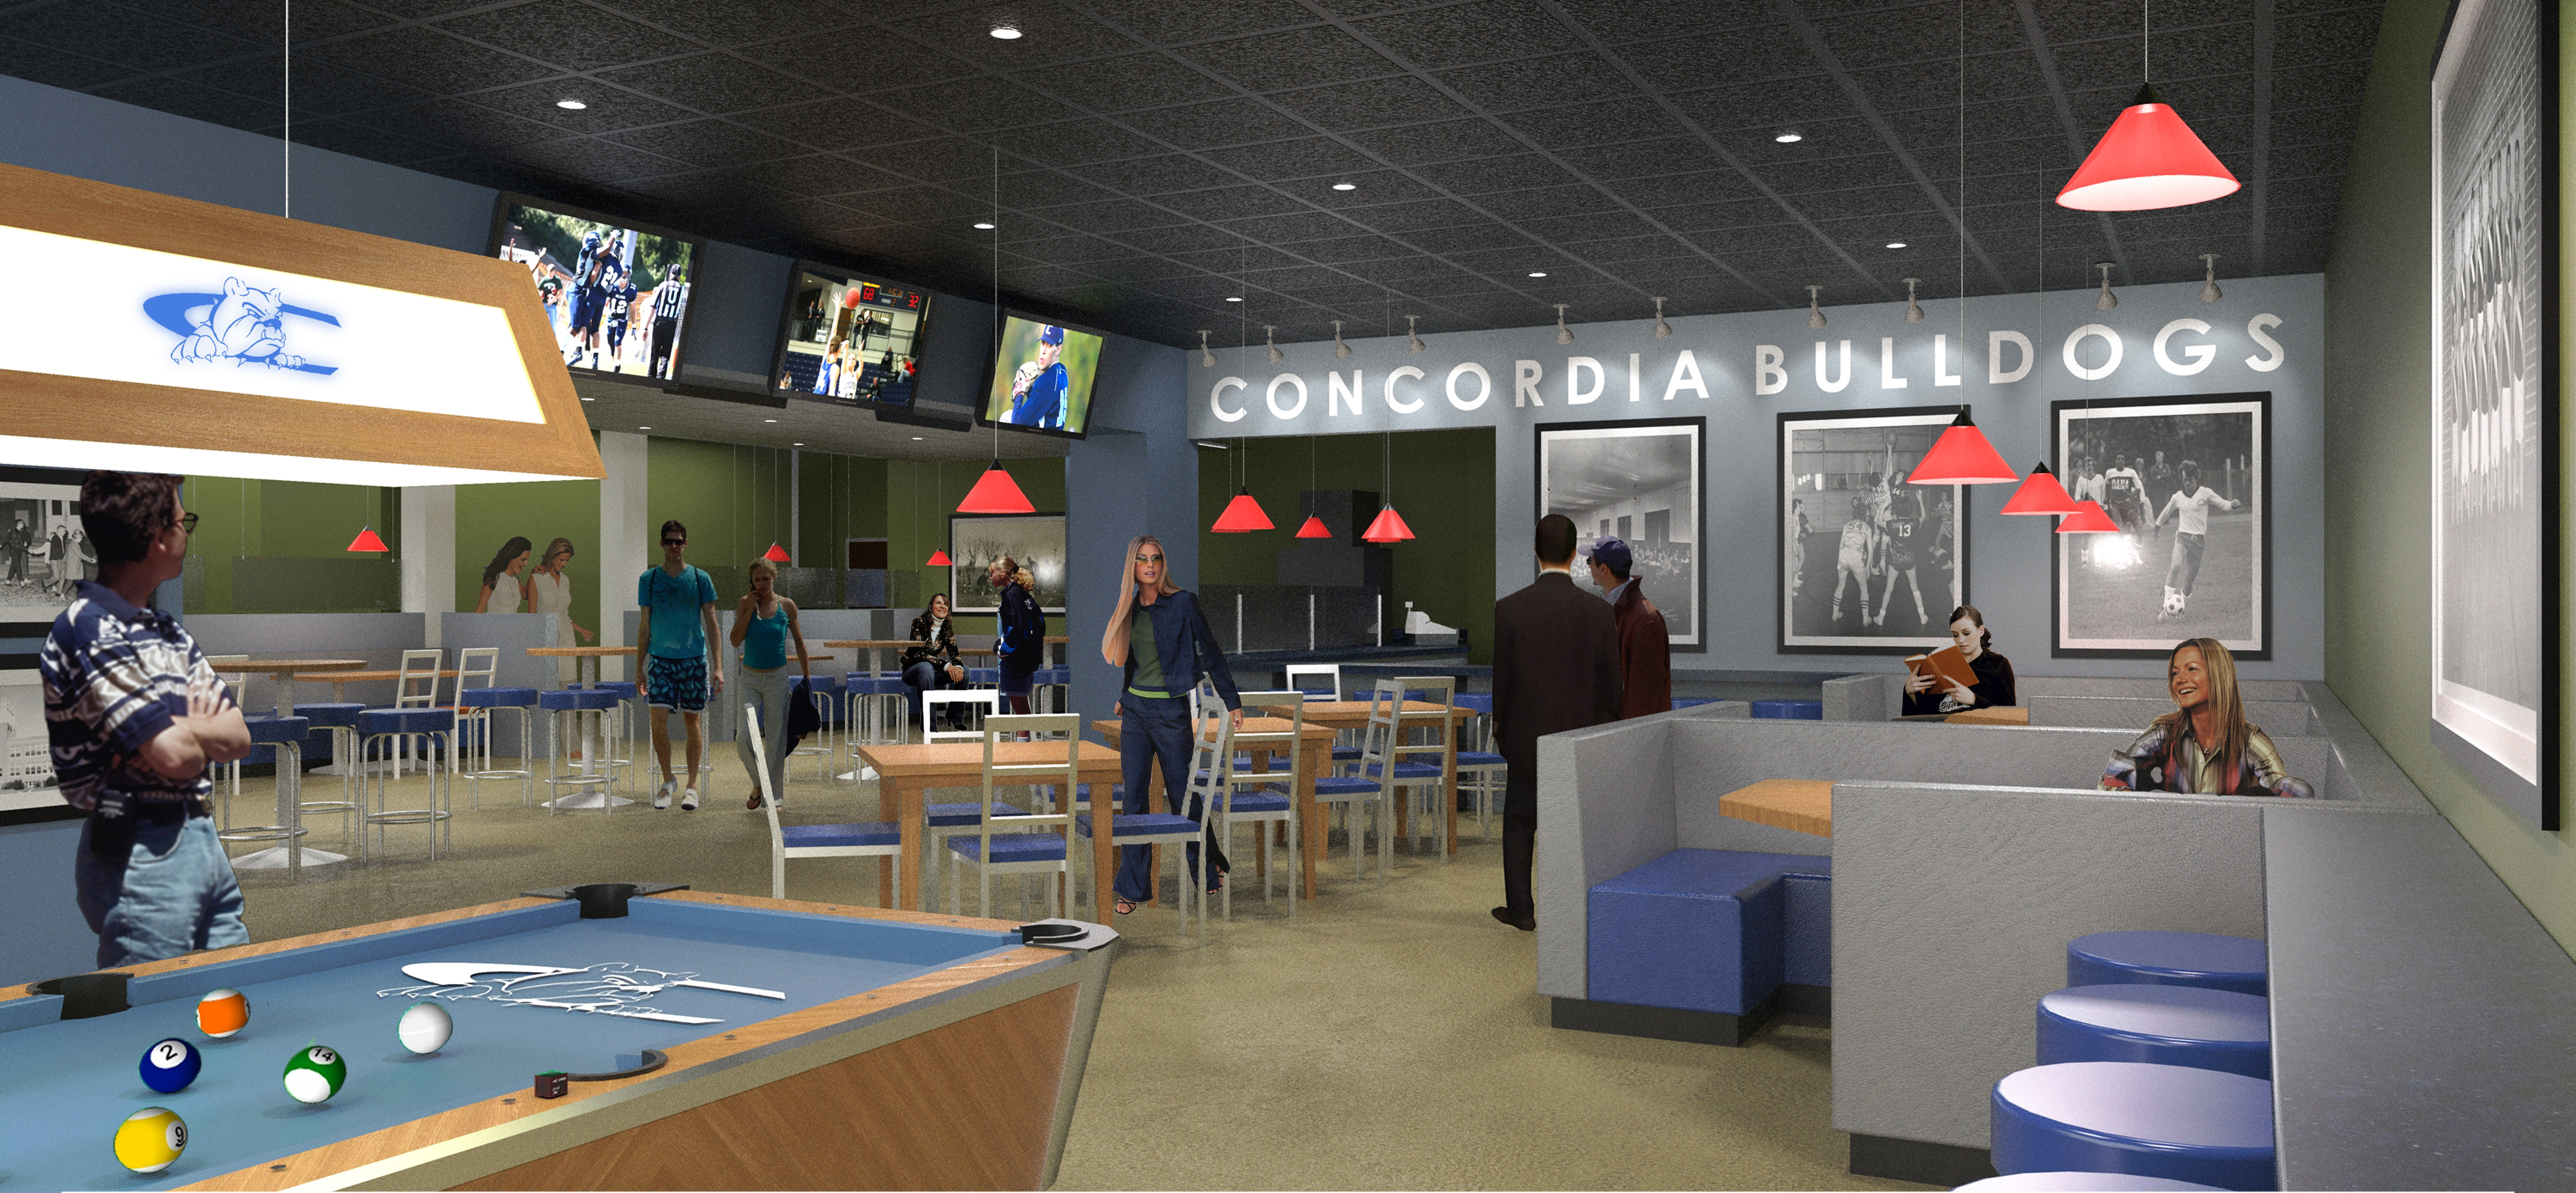 The addition of a grill-style dining area, named the Dog House Grill, is a part of a $1 million renovation project underway at the Janzow Campus Center at Concordia University, Nebraska as shown in this 3-D rendering.